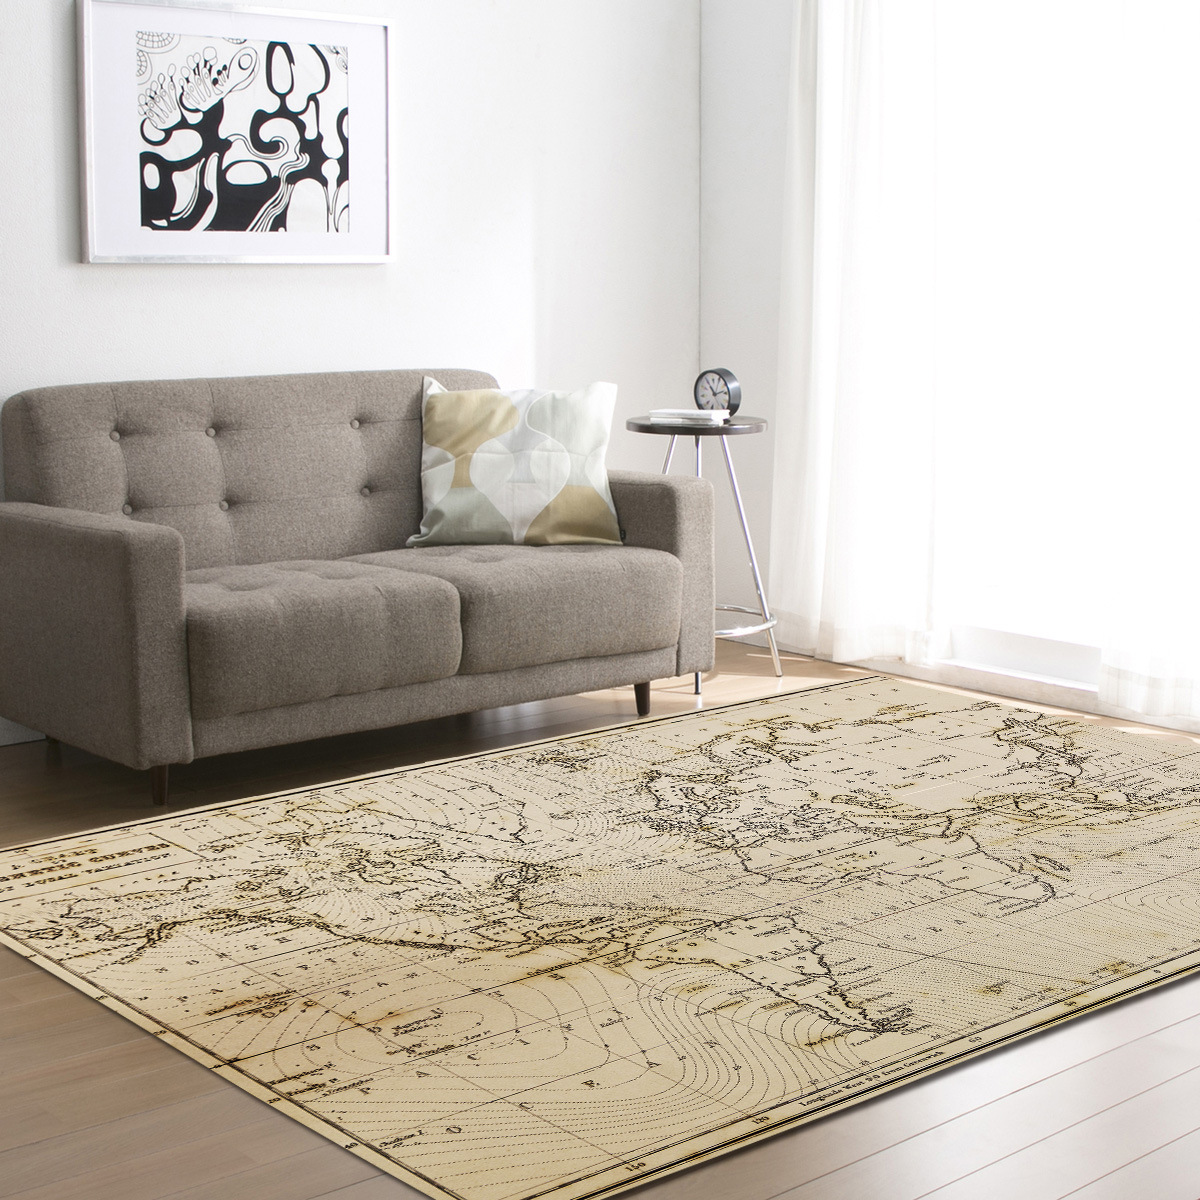 Zeegle World Map Floor Mat Carpets For Living Room Anti Slip